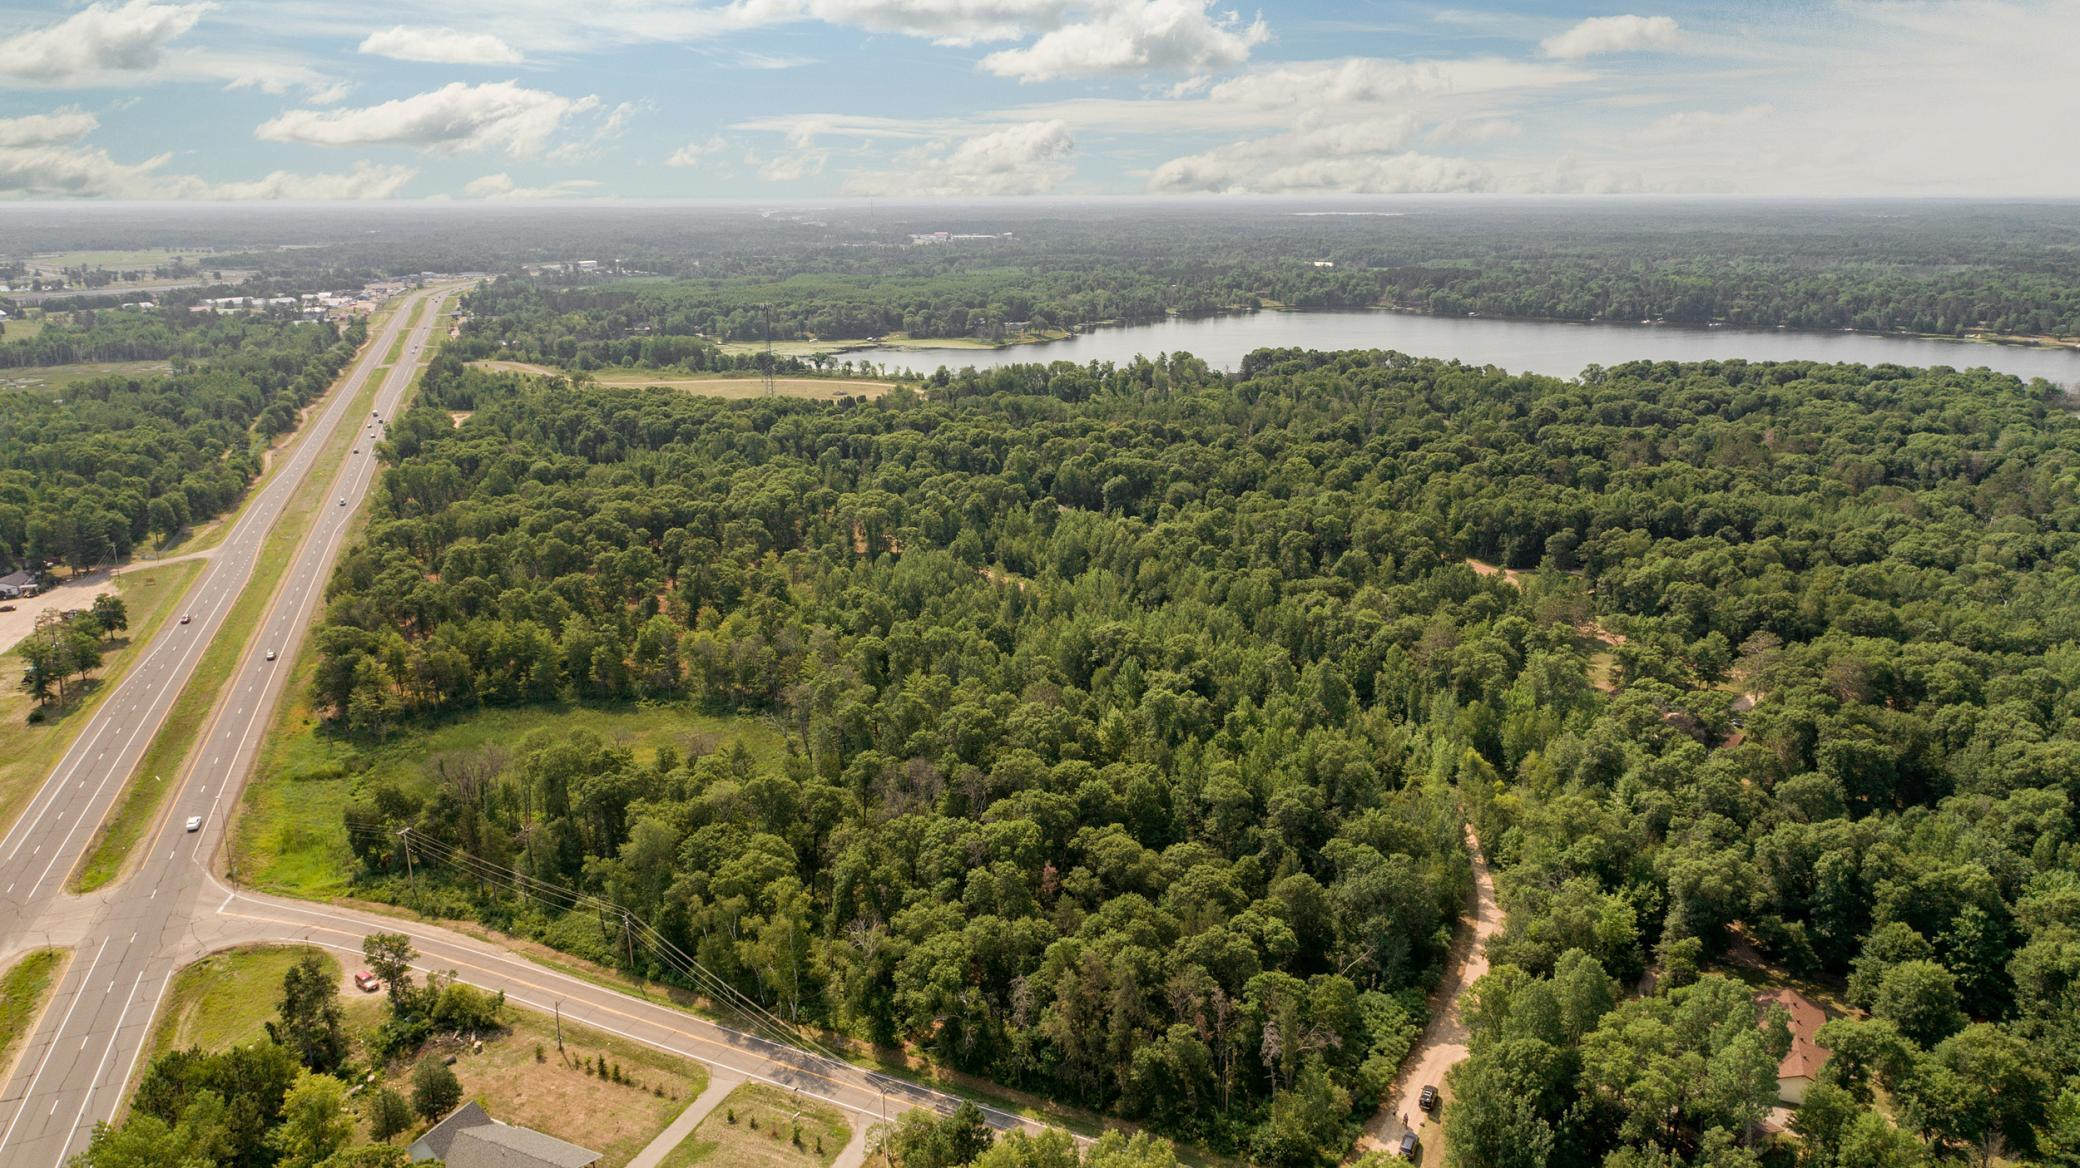 Great commercial devlopment opportunity with 1600+/- feet of frontage on Highway 371 and 23.52 Acres. Property may be viewed from Joannes Dr NW. Access off Green Gables road or right off of 371 South bound.